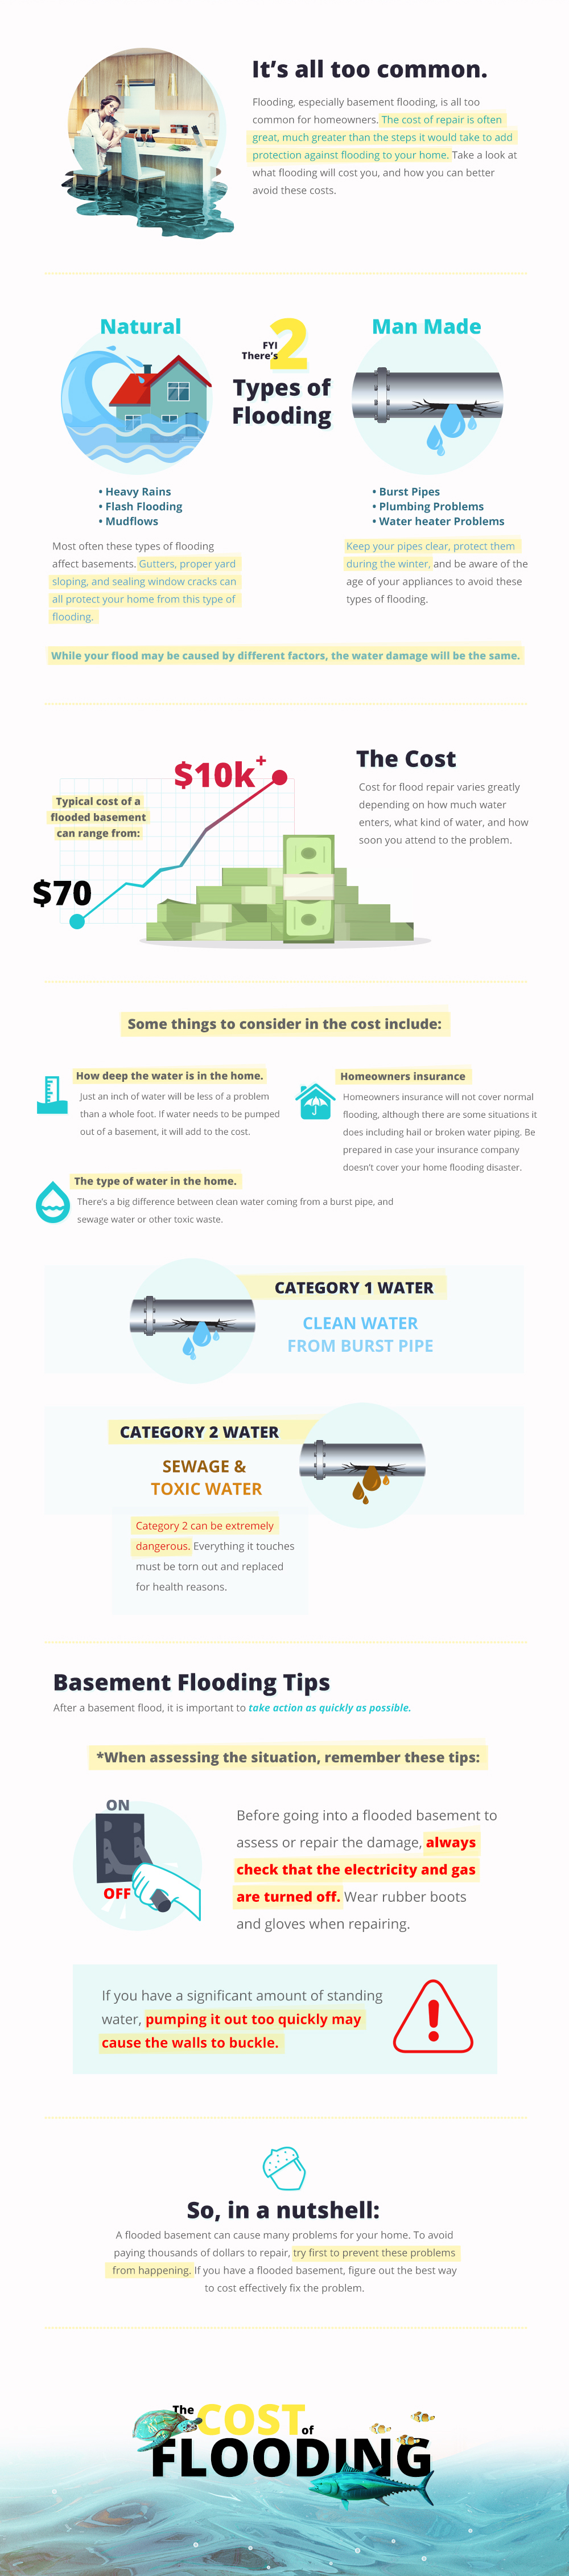 The_Cost_of_Flooding-(Rapid-INFOGRAPHIC)-Part_2